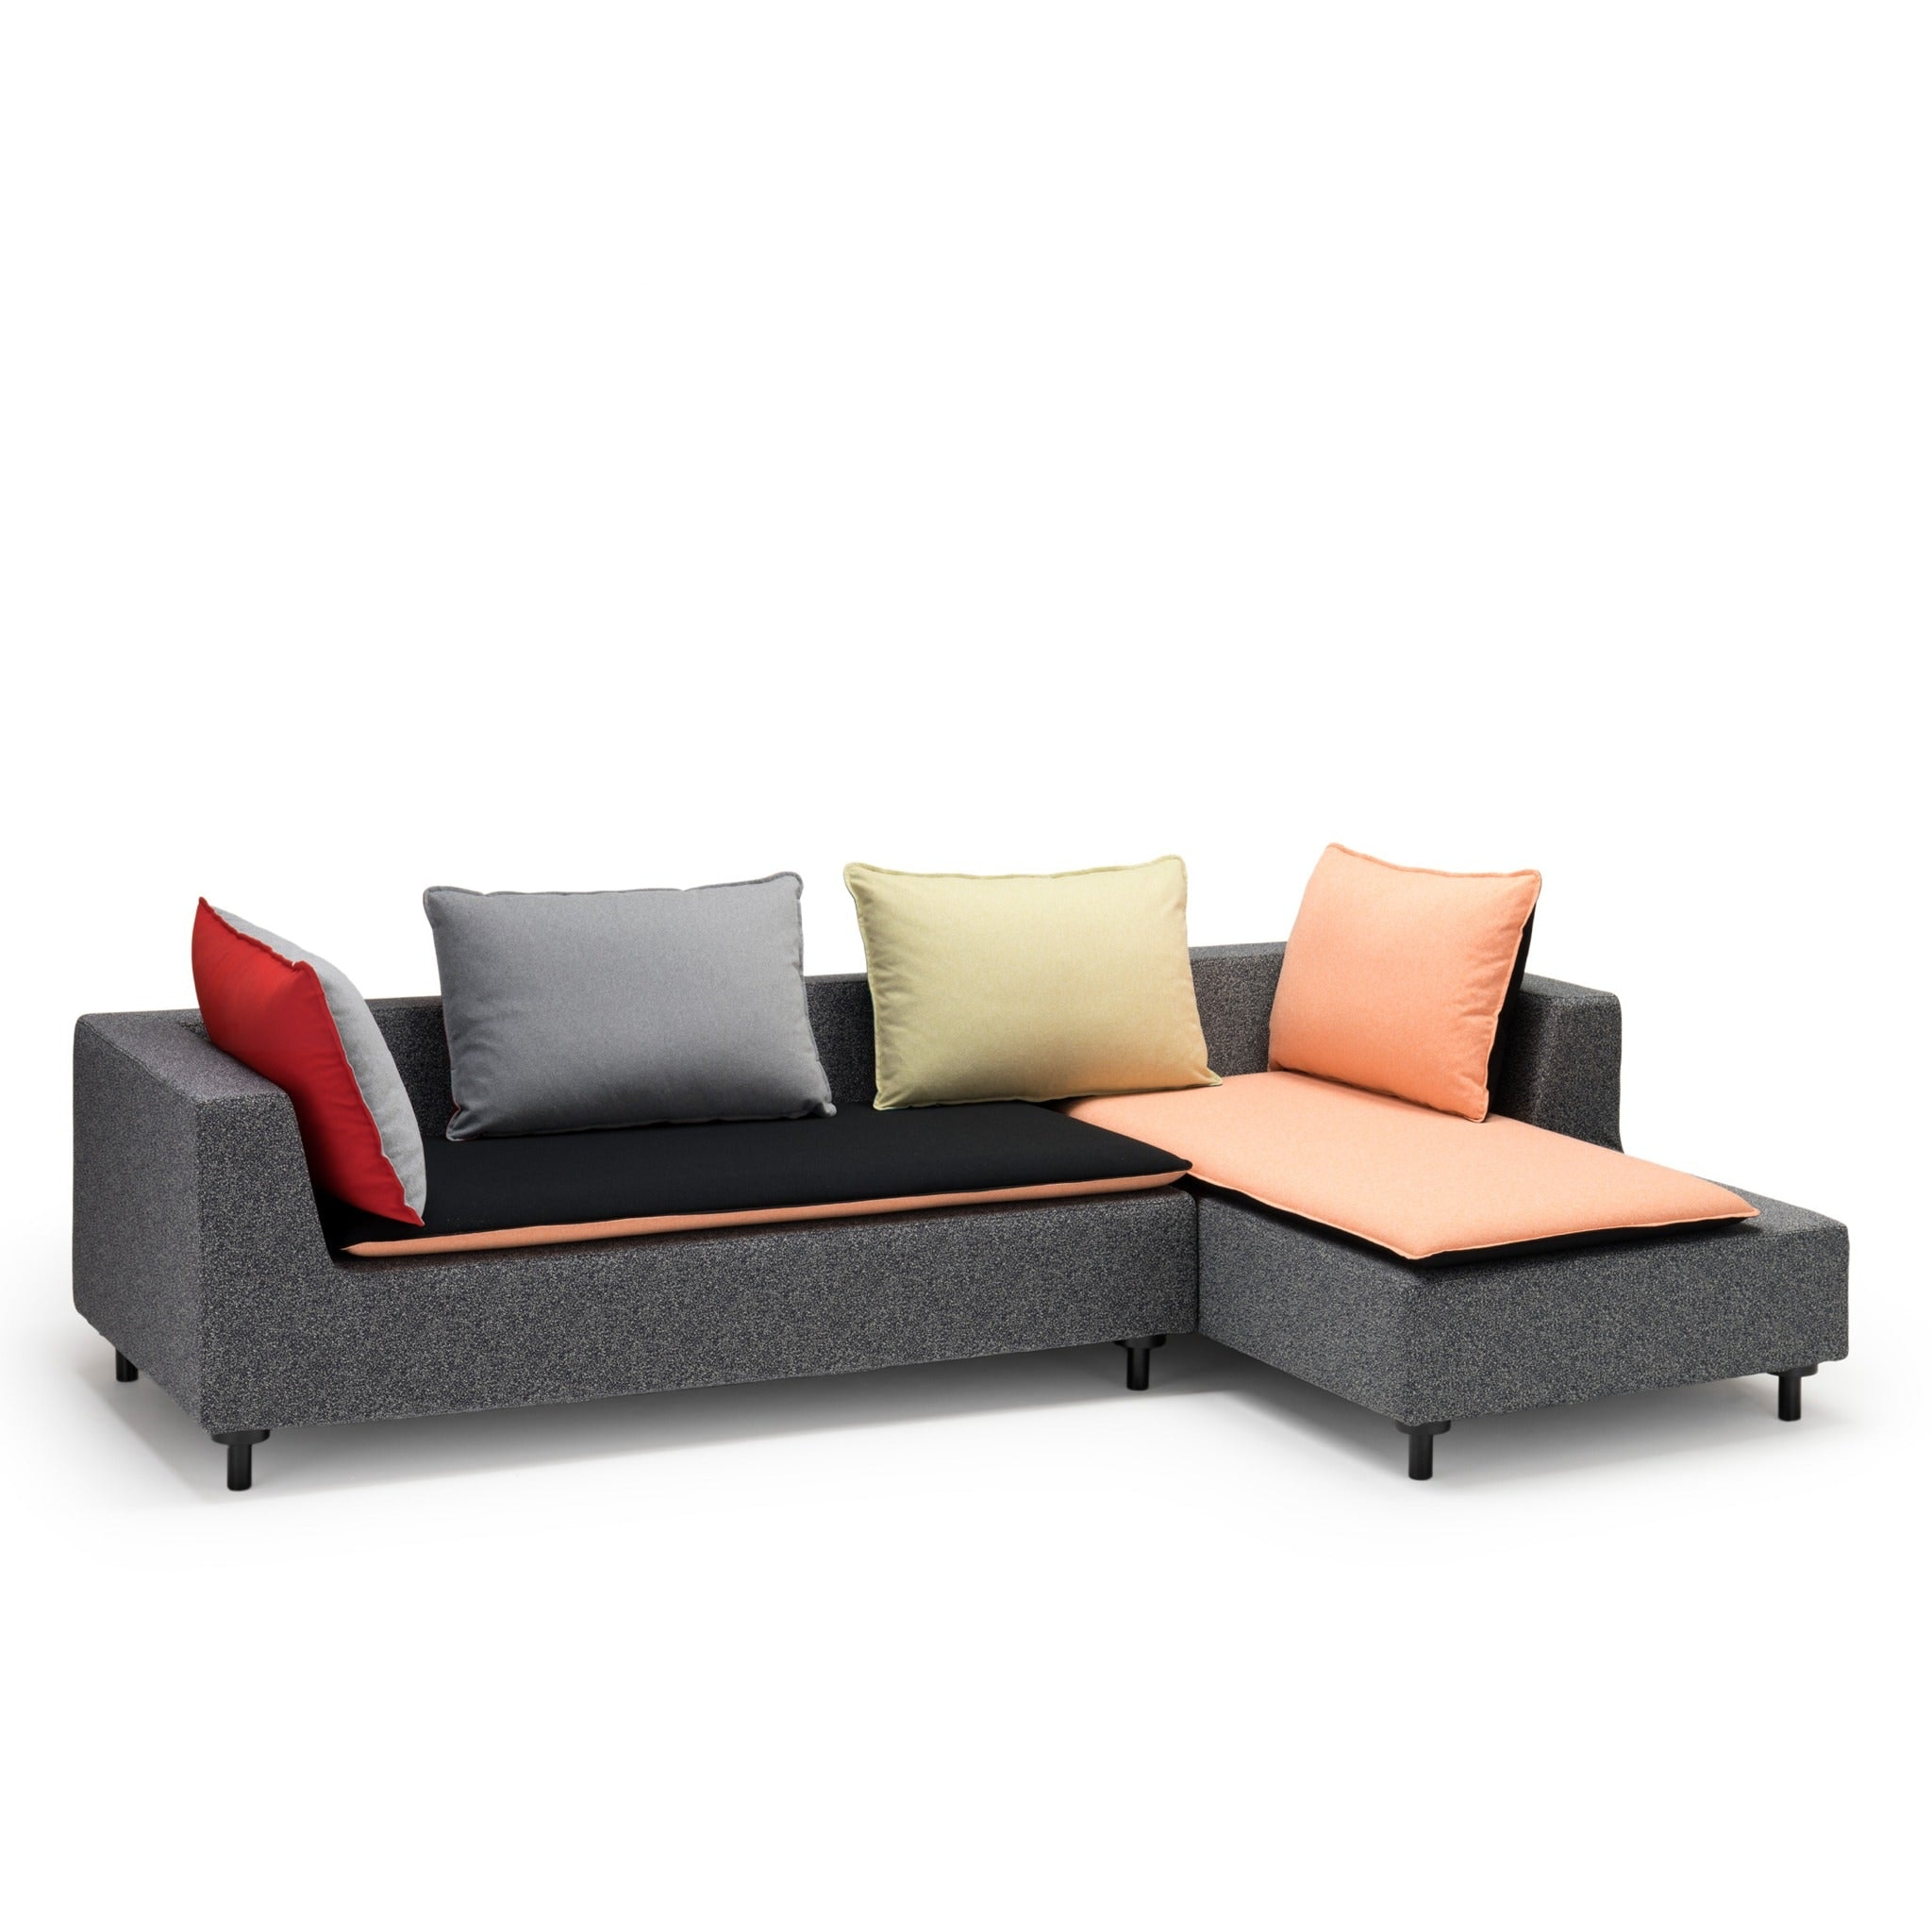 Barbican Sofa by Established & Sons